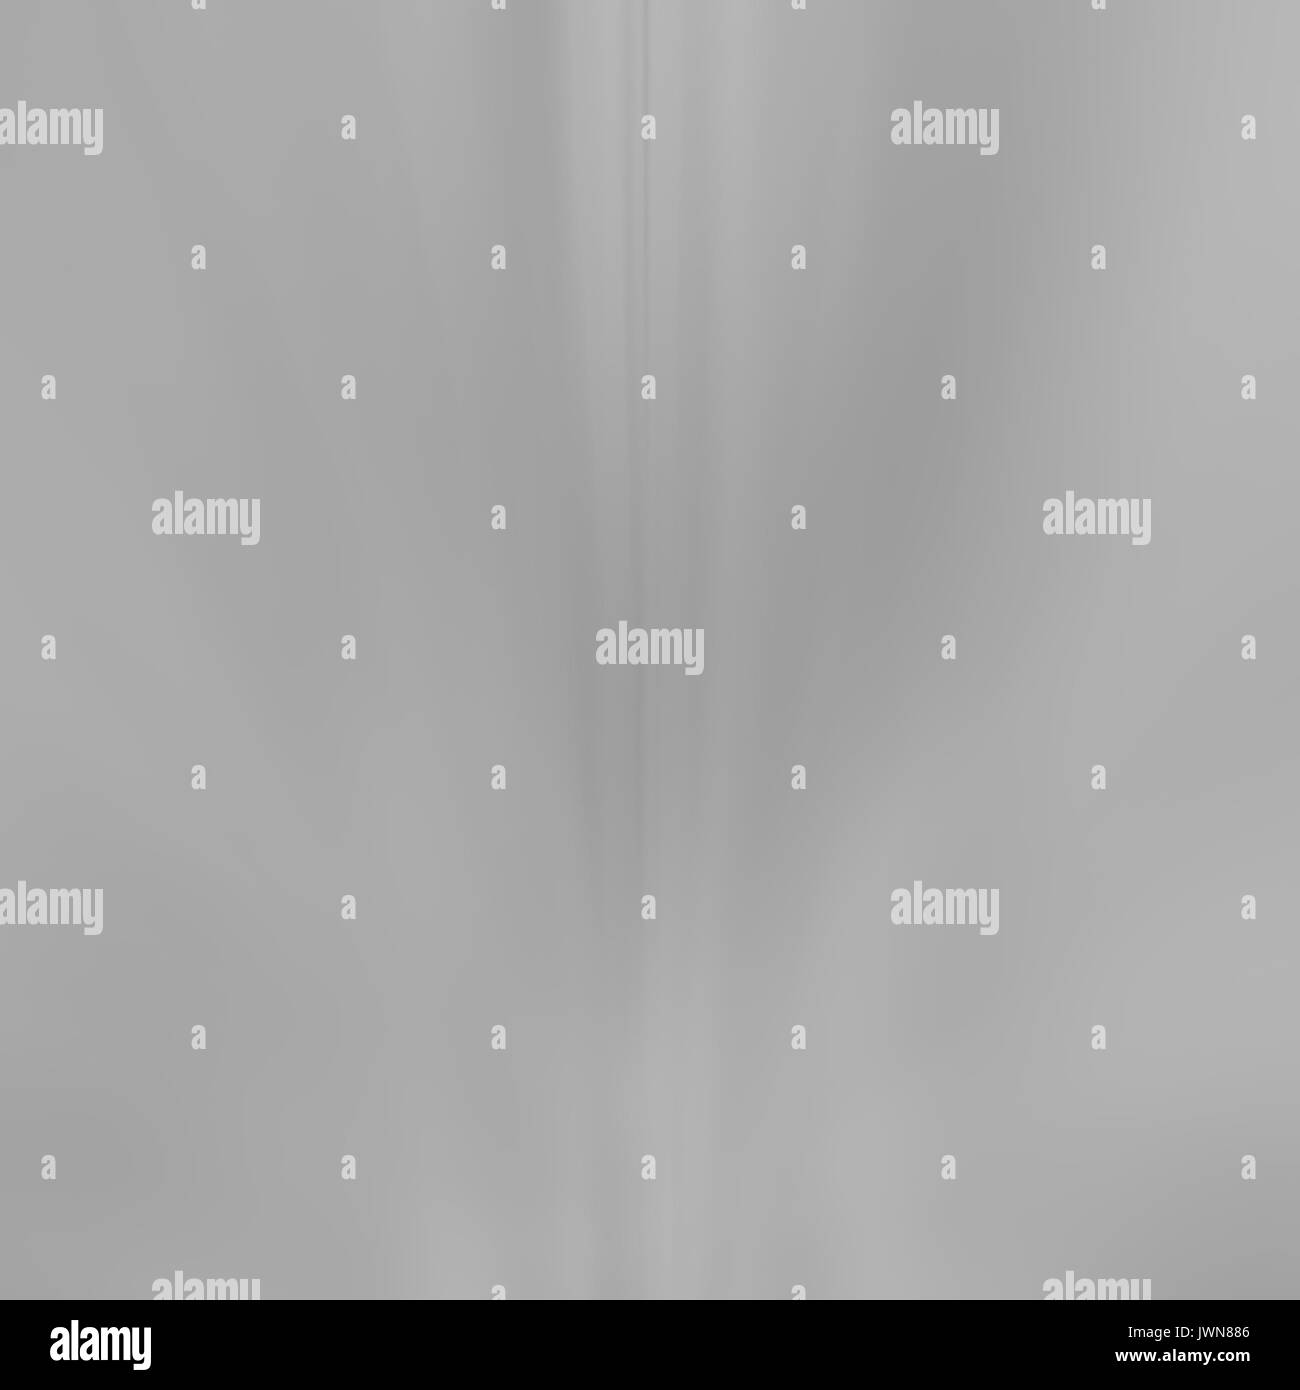 Abstract drawing light gray blurred background. - Stock Image